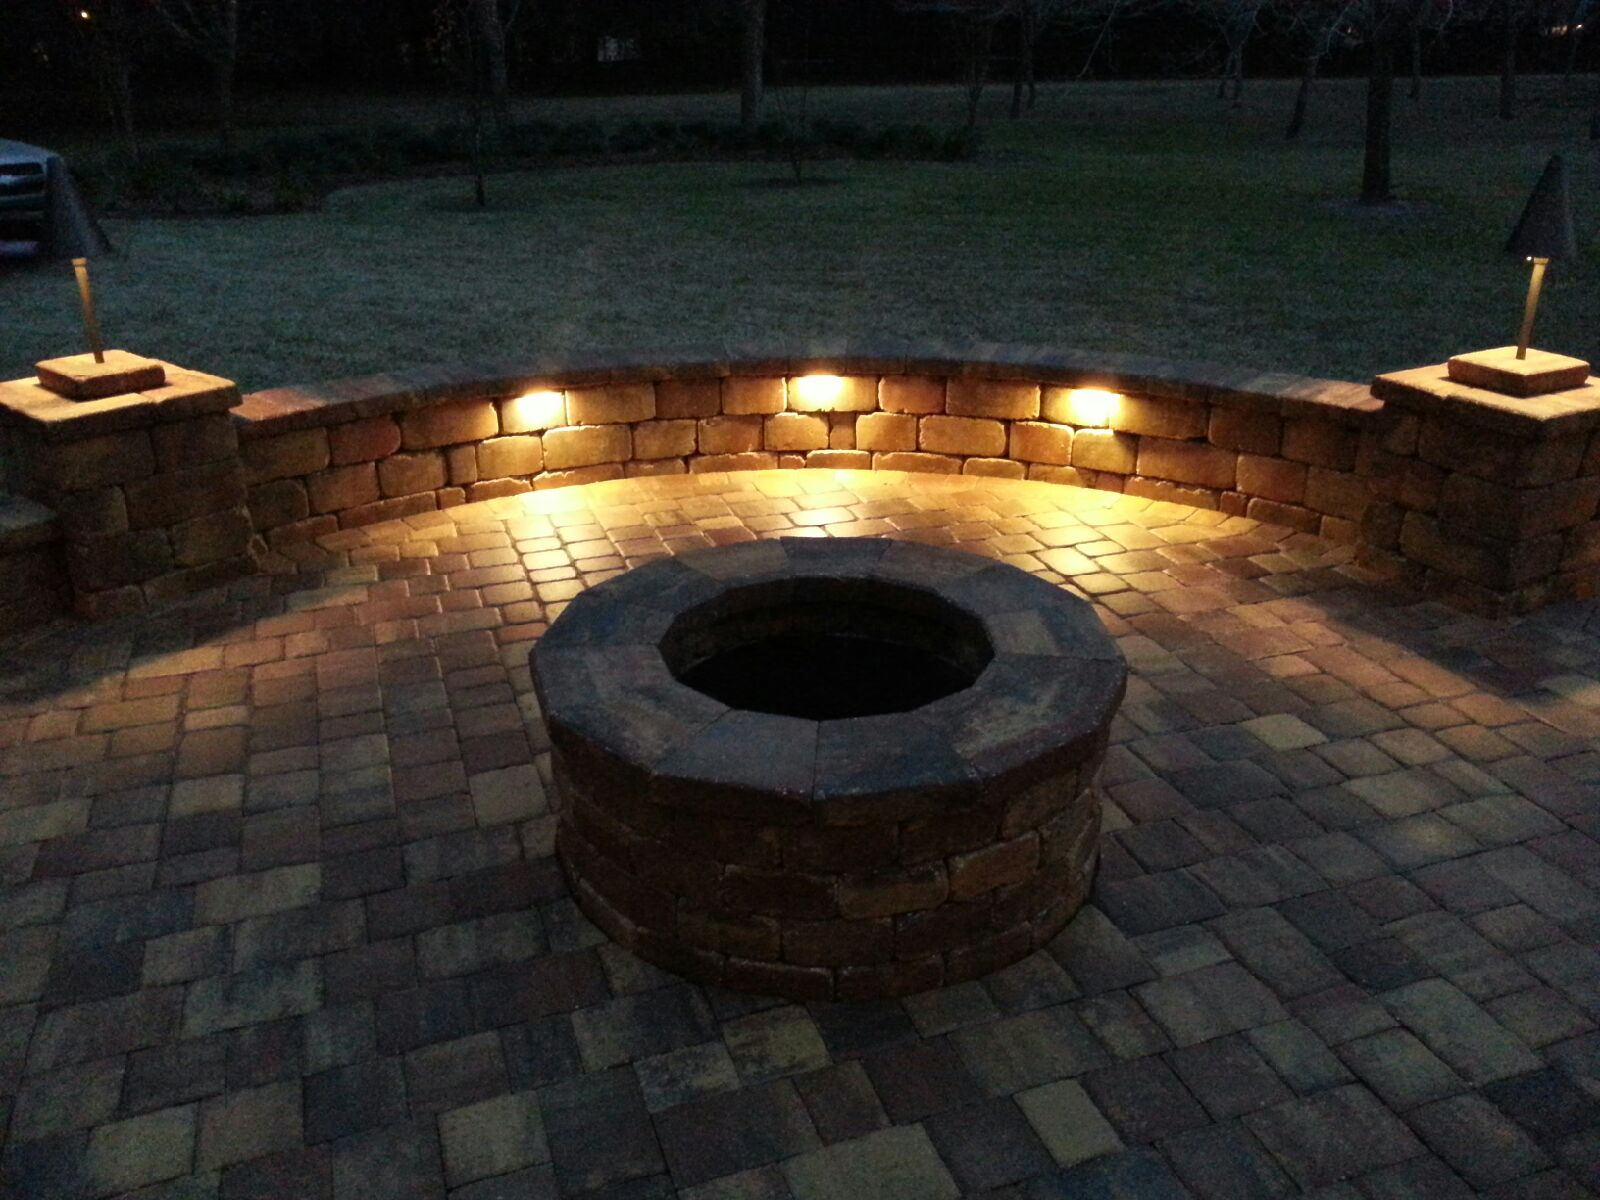 Concrete Paver Patio with Fire Pit and Wall